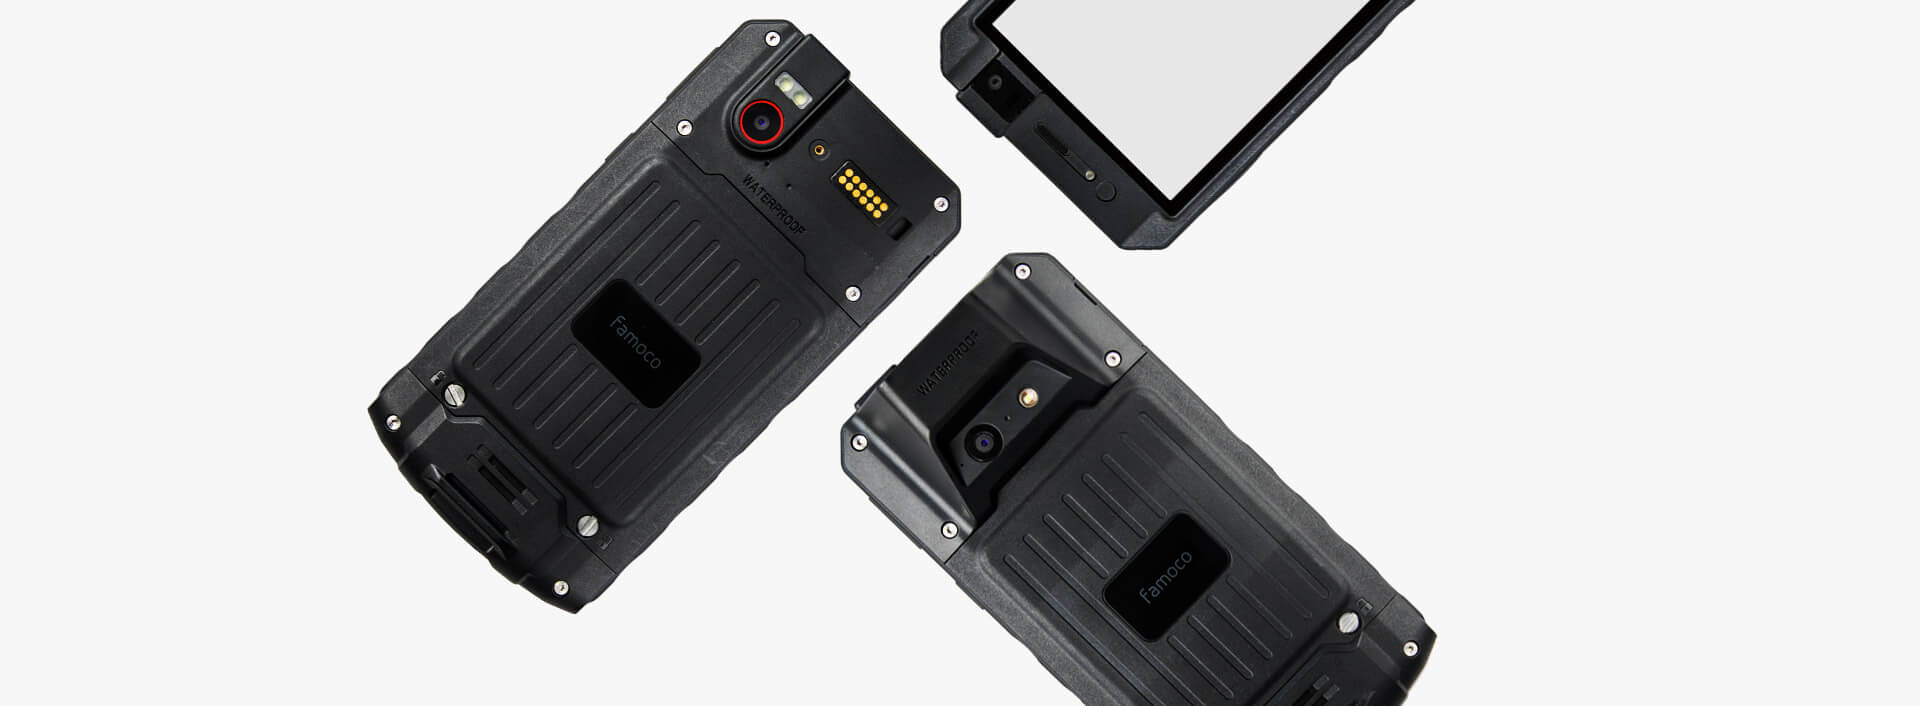 Rugged-devices-backgroud-3-2